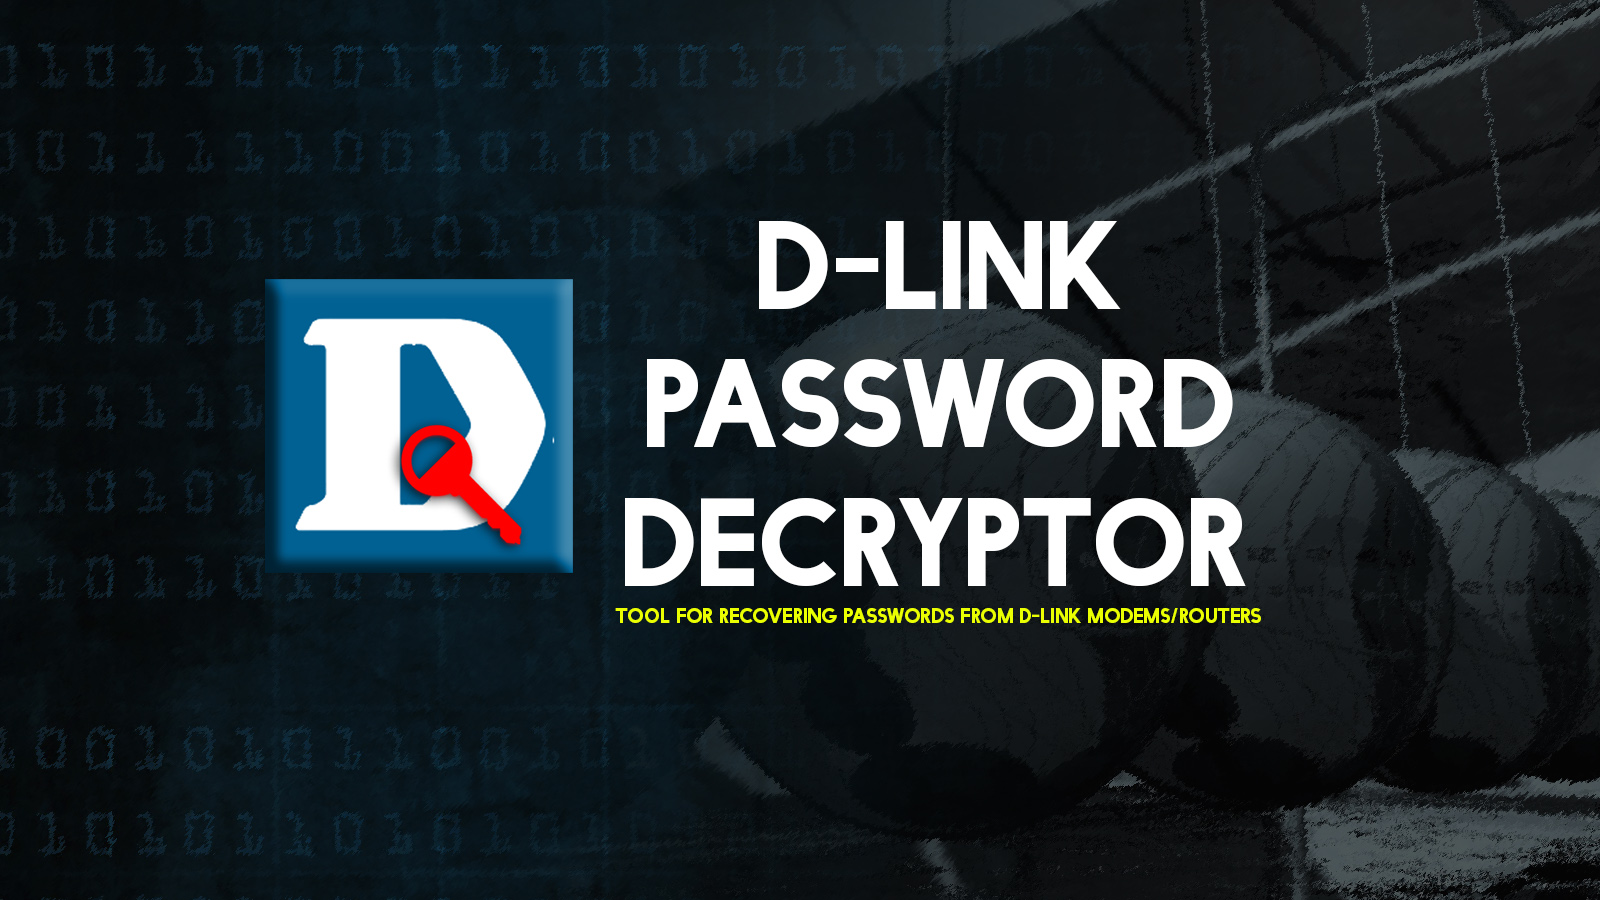 D-Link Password Decryptor - Tool for Recovering Passwords from D-Link Modems/Routers